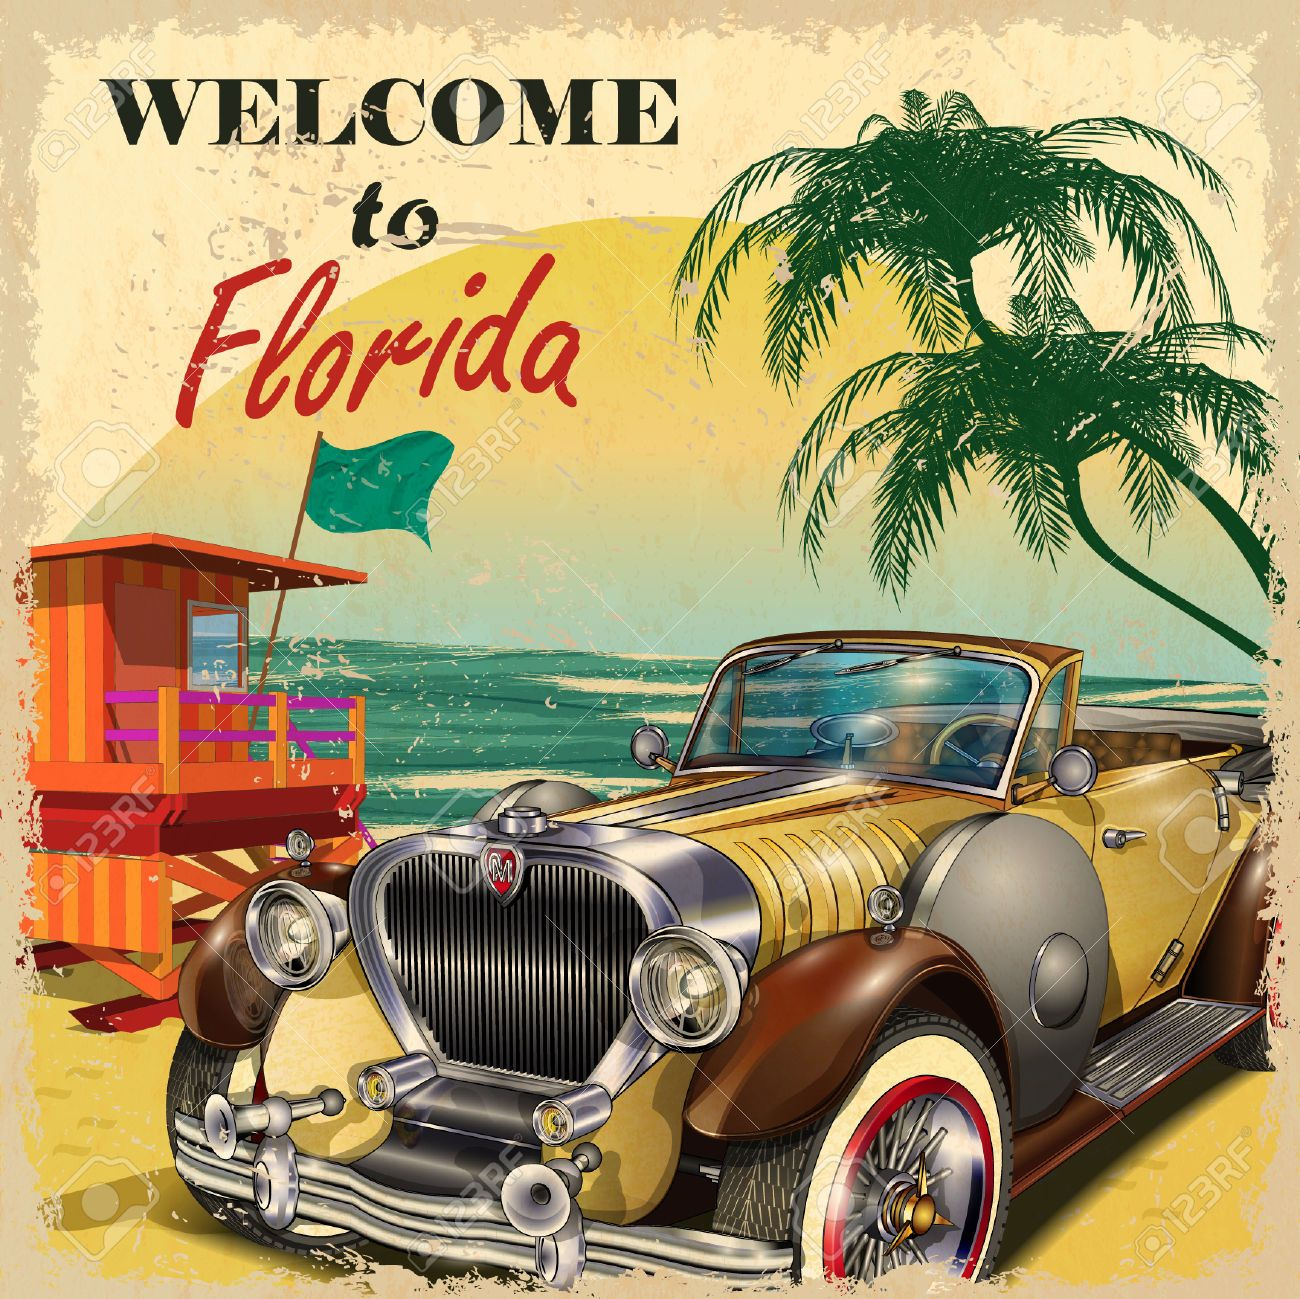 52512513-Welcome-to-Florida-retro-poster--Stock-Vector-vintage.jpg ...